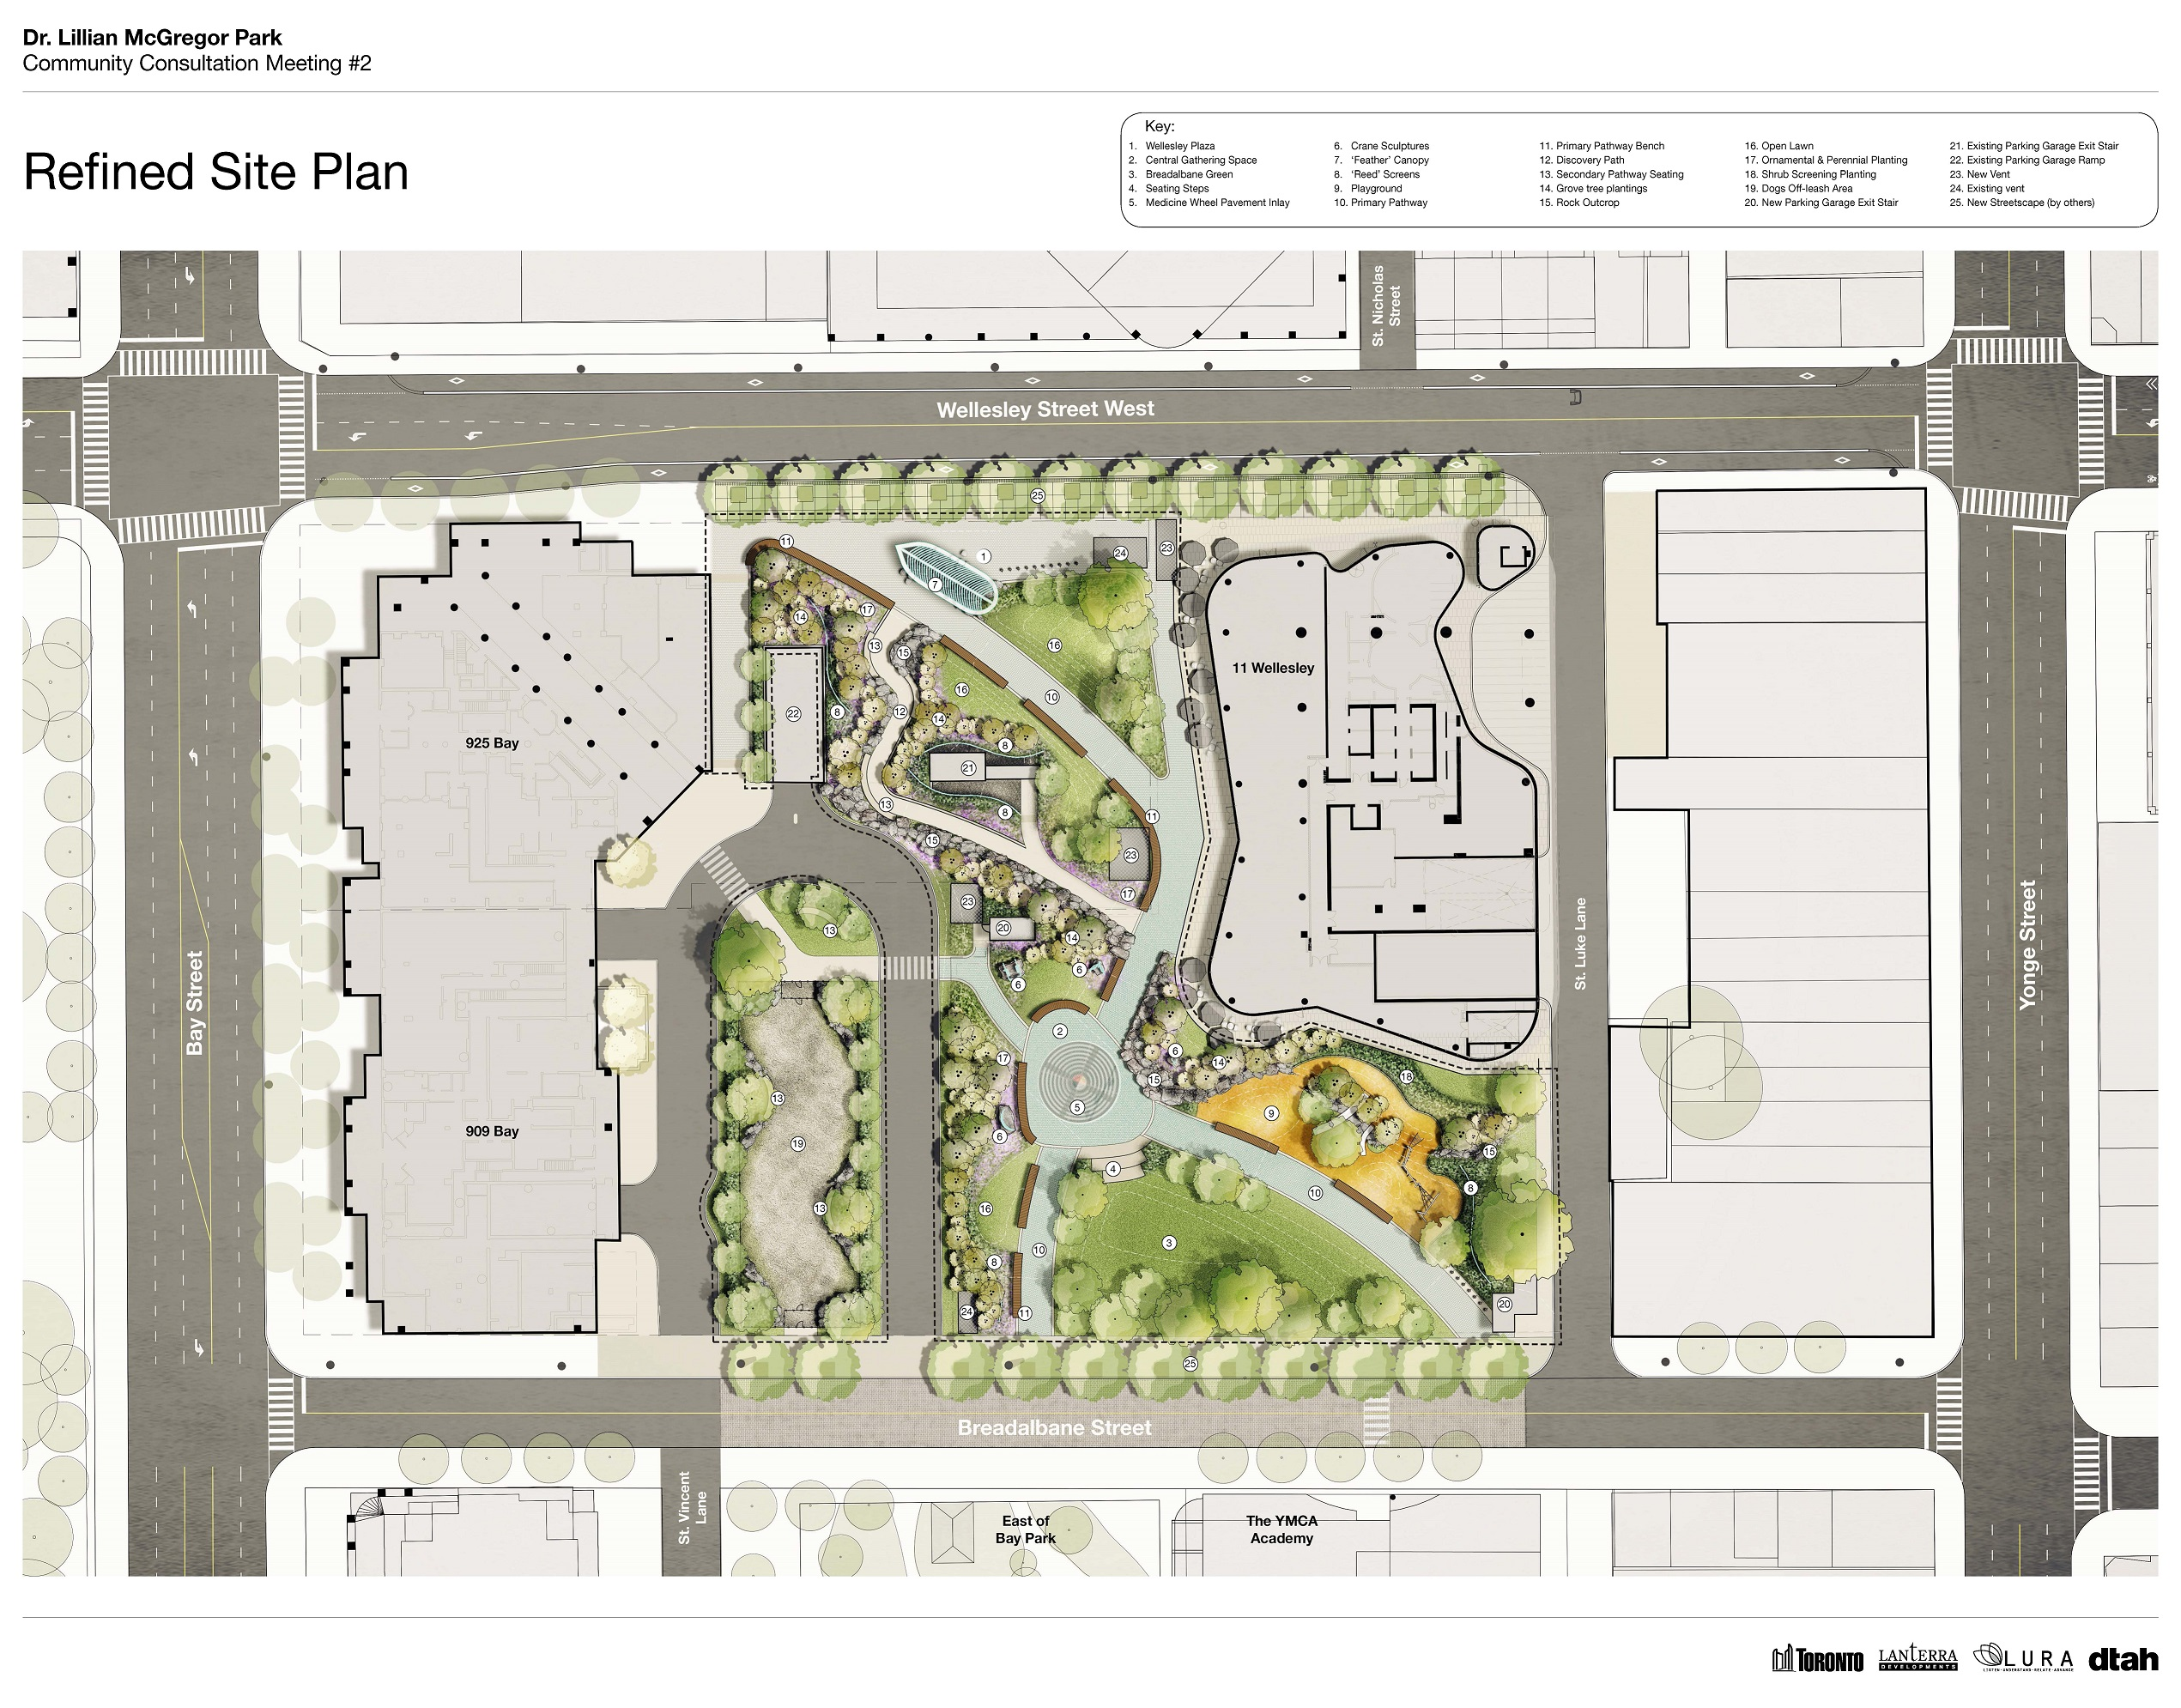 Refined Site Plan - Context